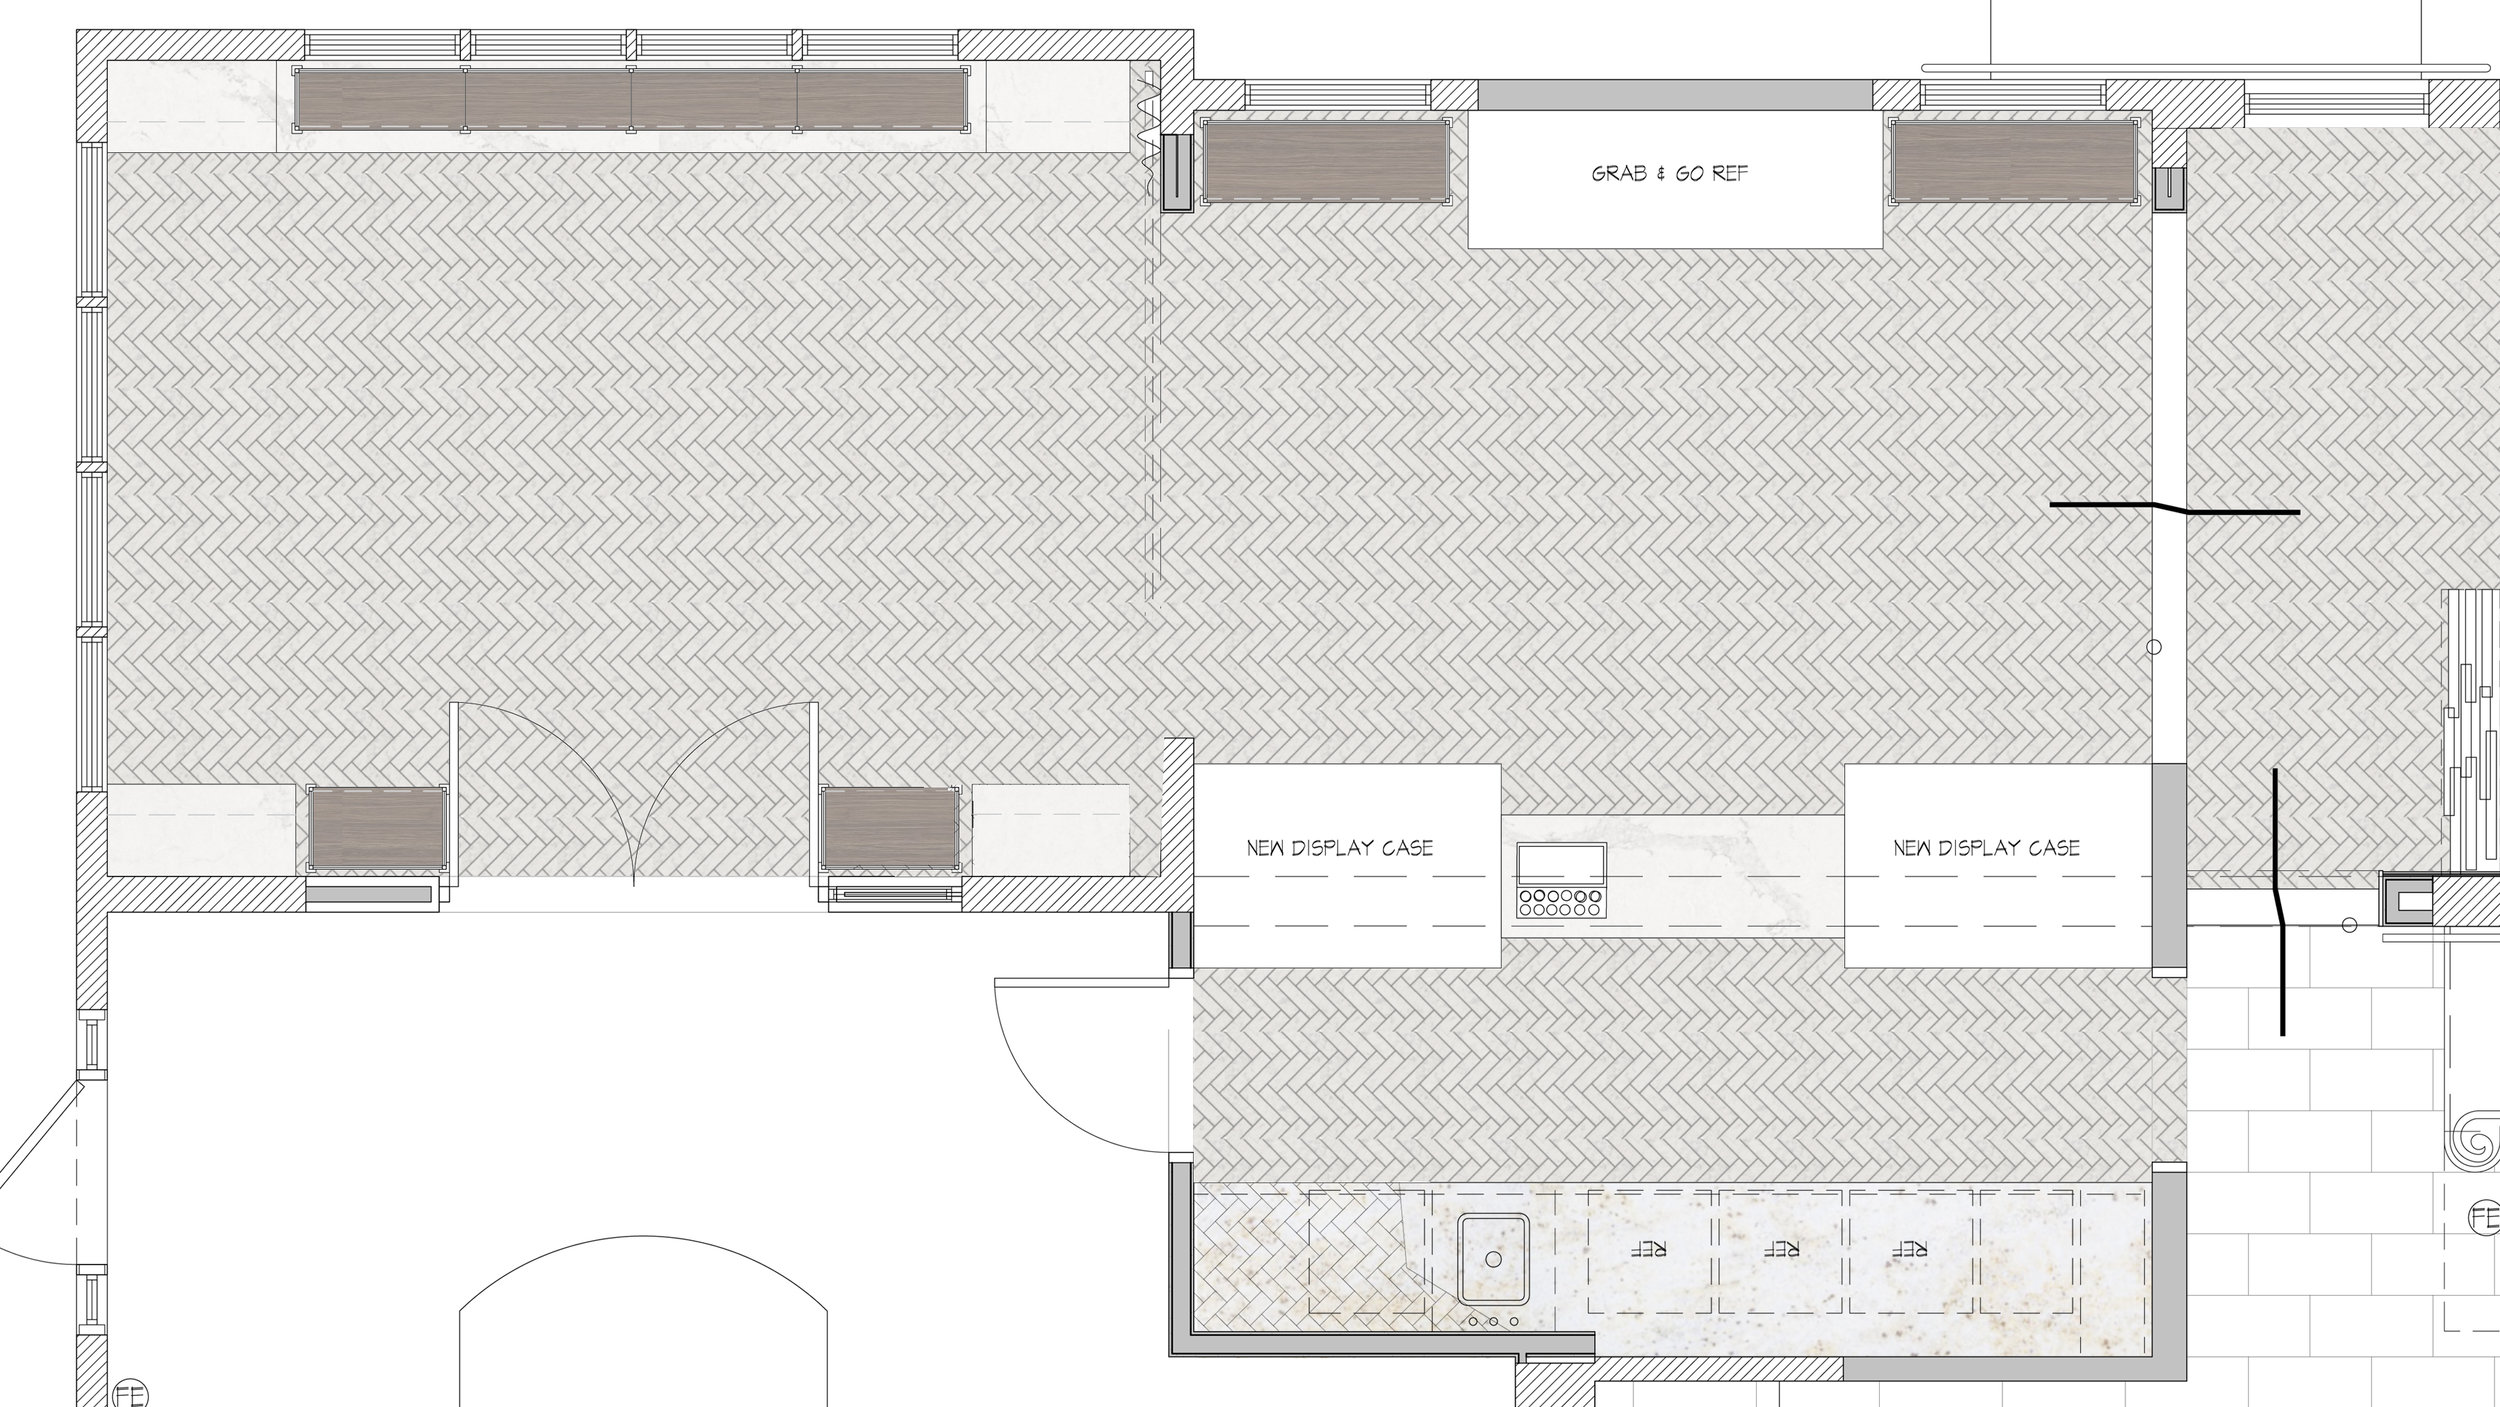 Retail Floorplan.jpg